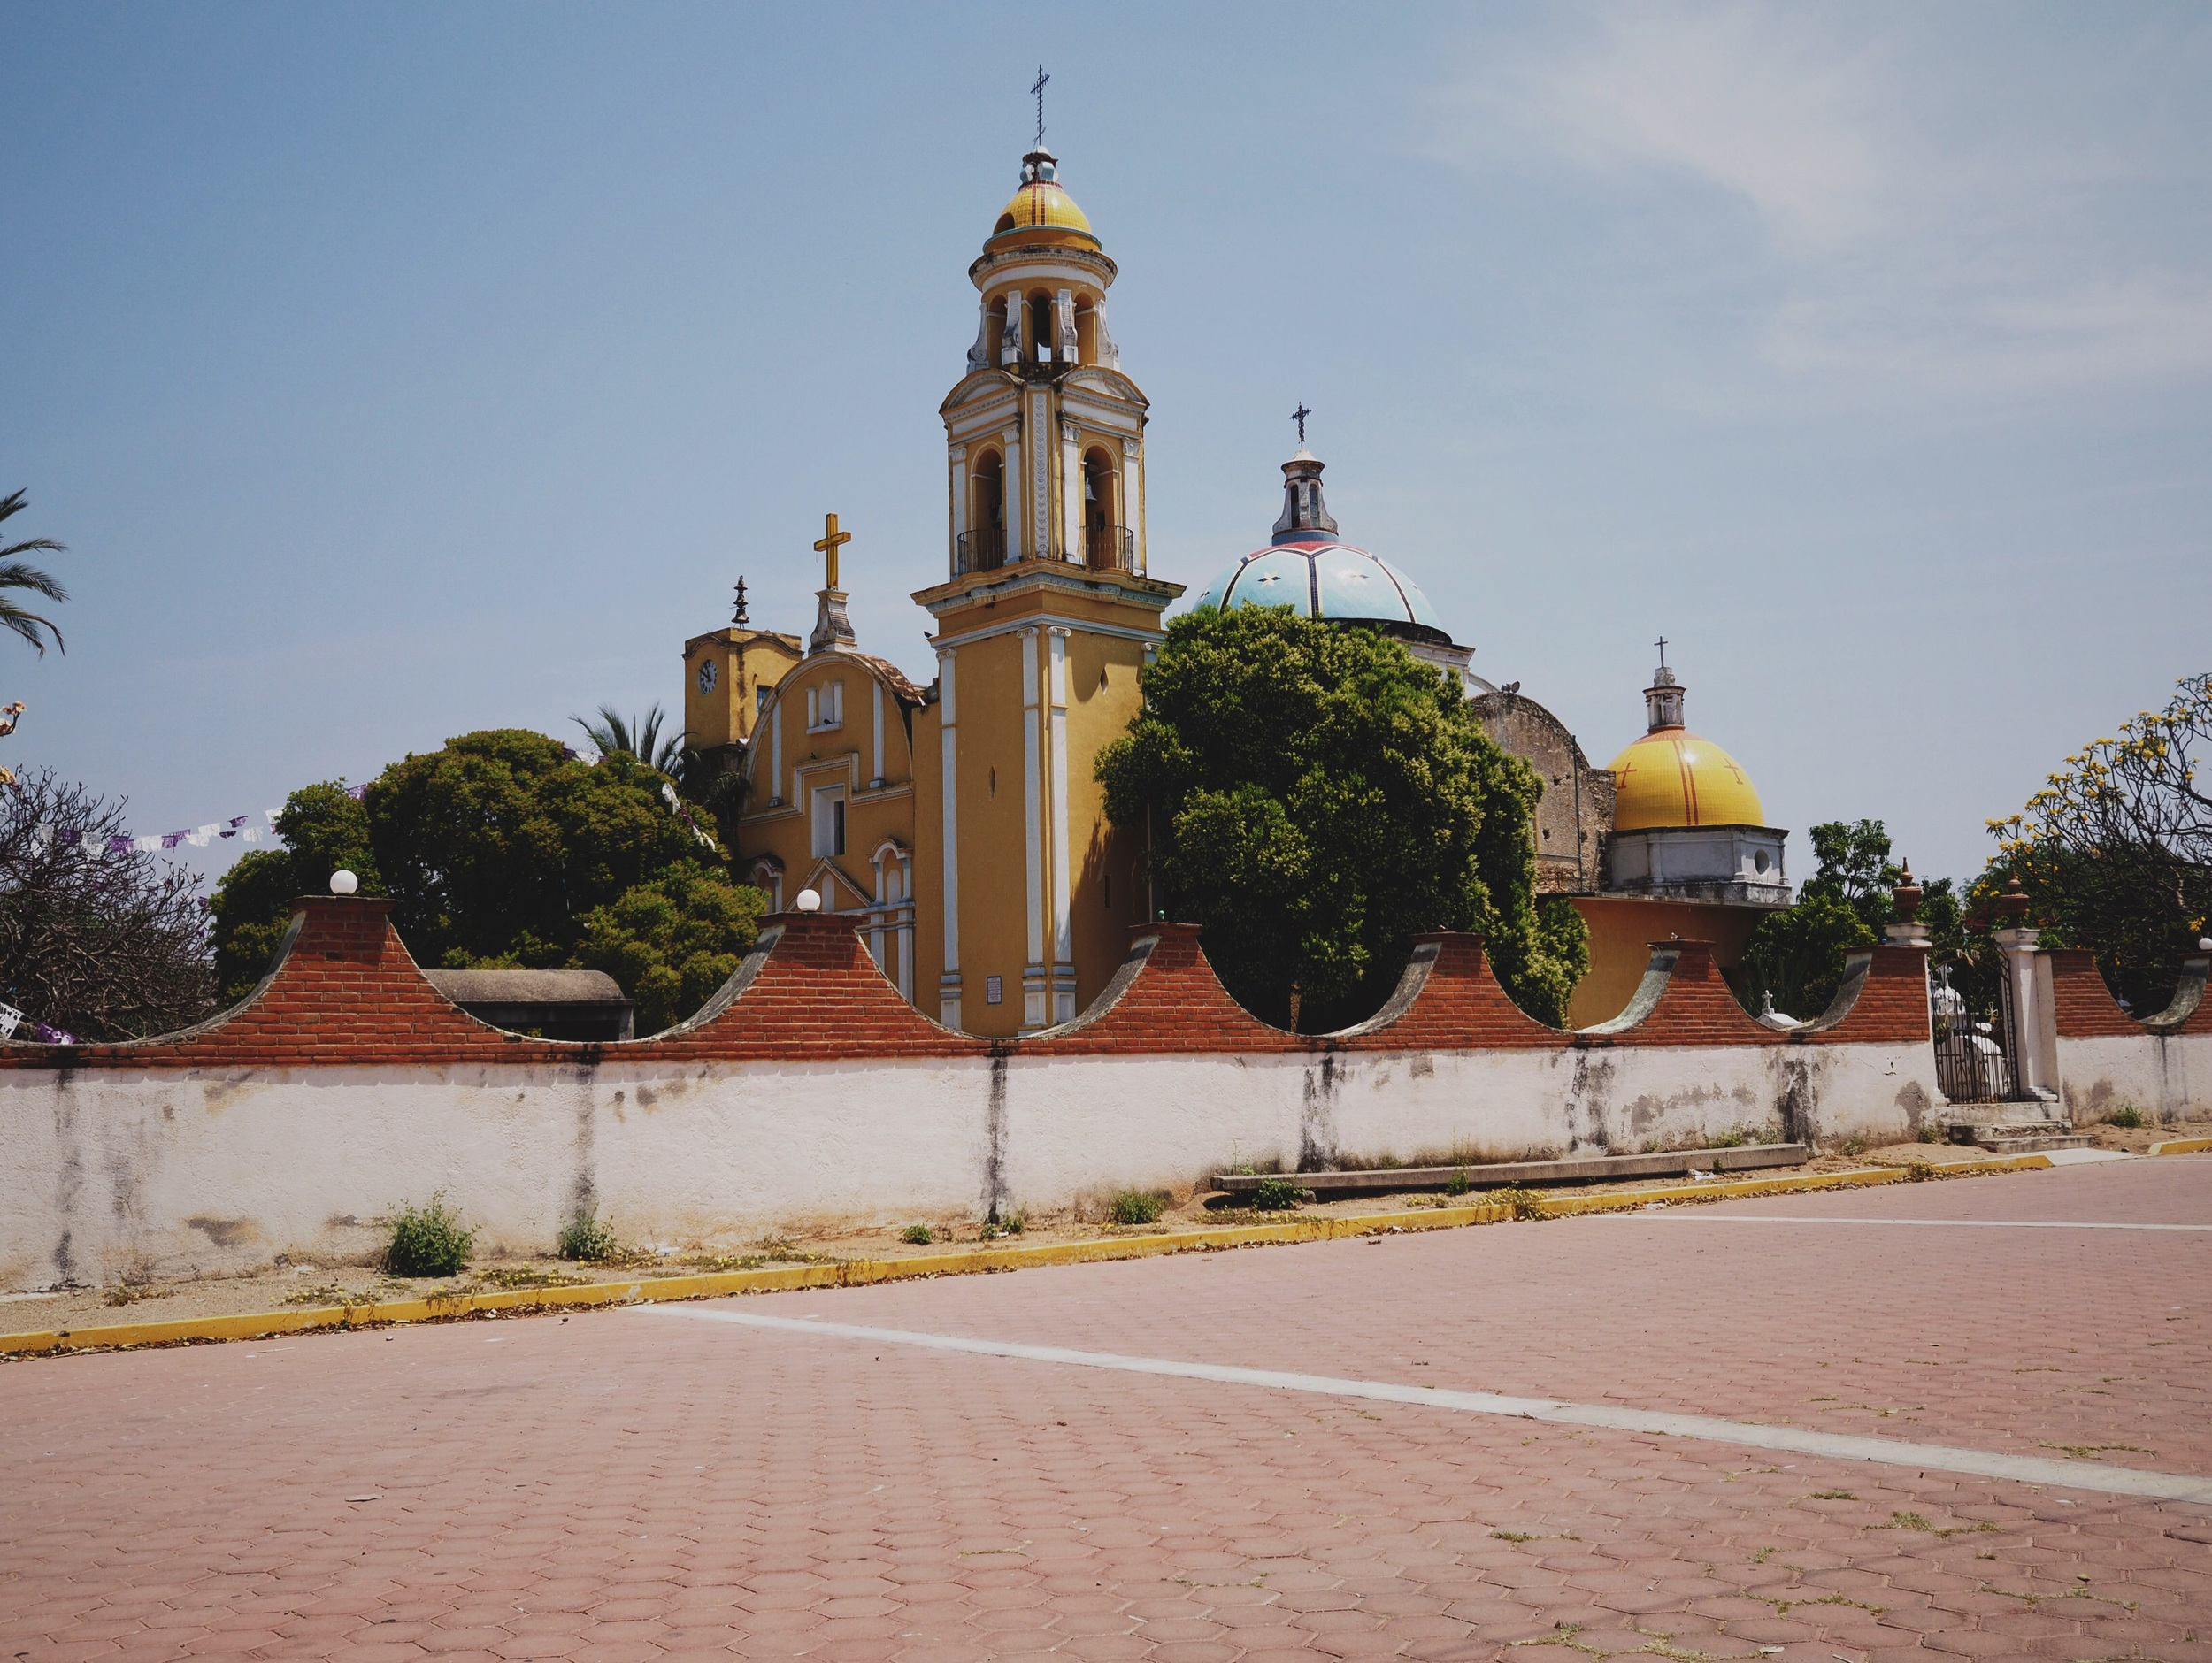 Lots of churches along this stretch - even in the tiniest of towns, the churches are large and well-kept